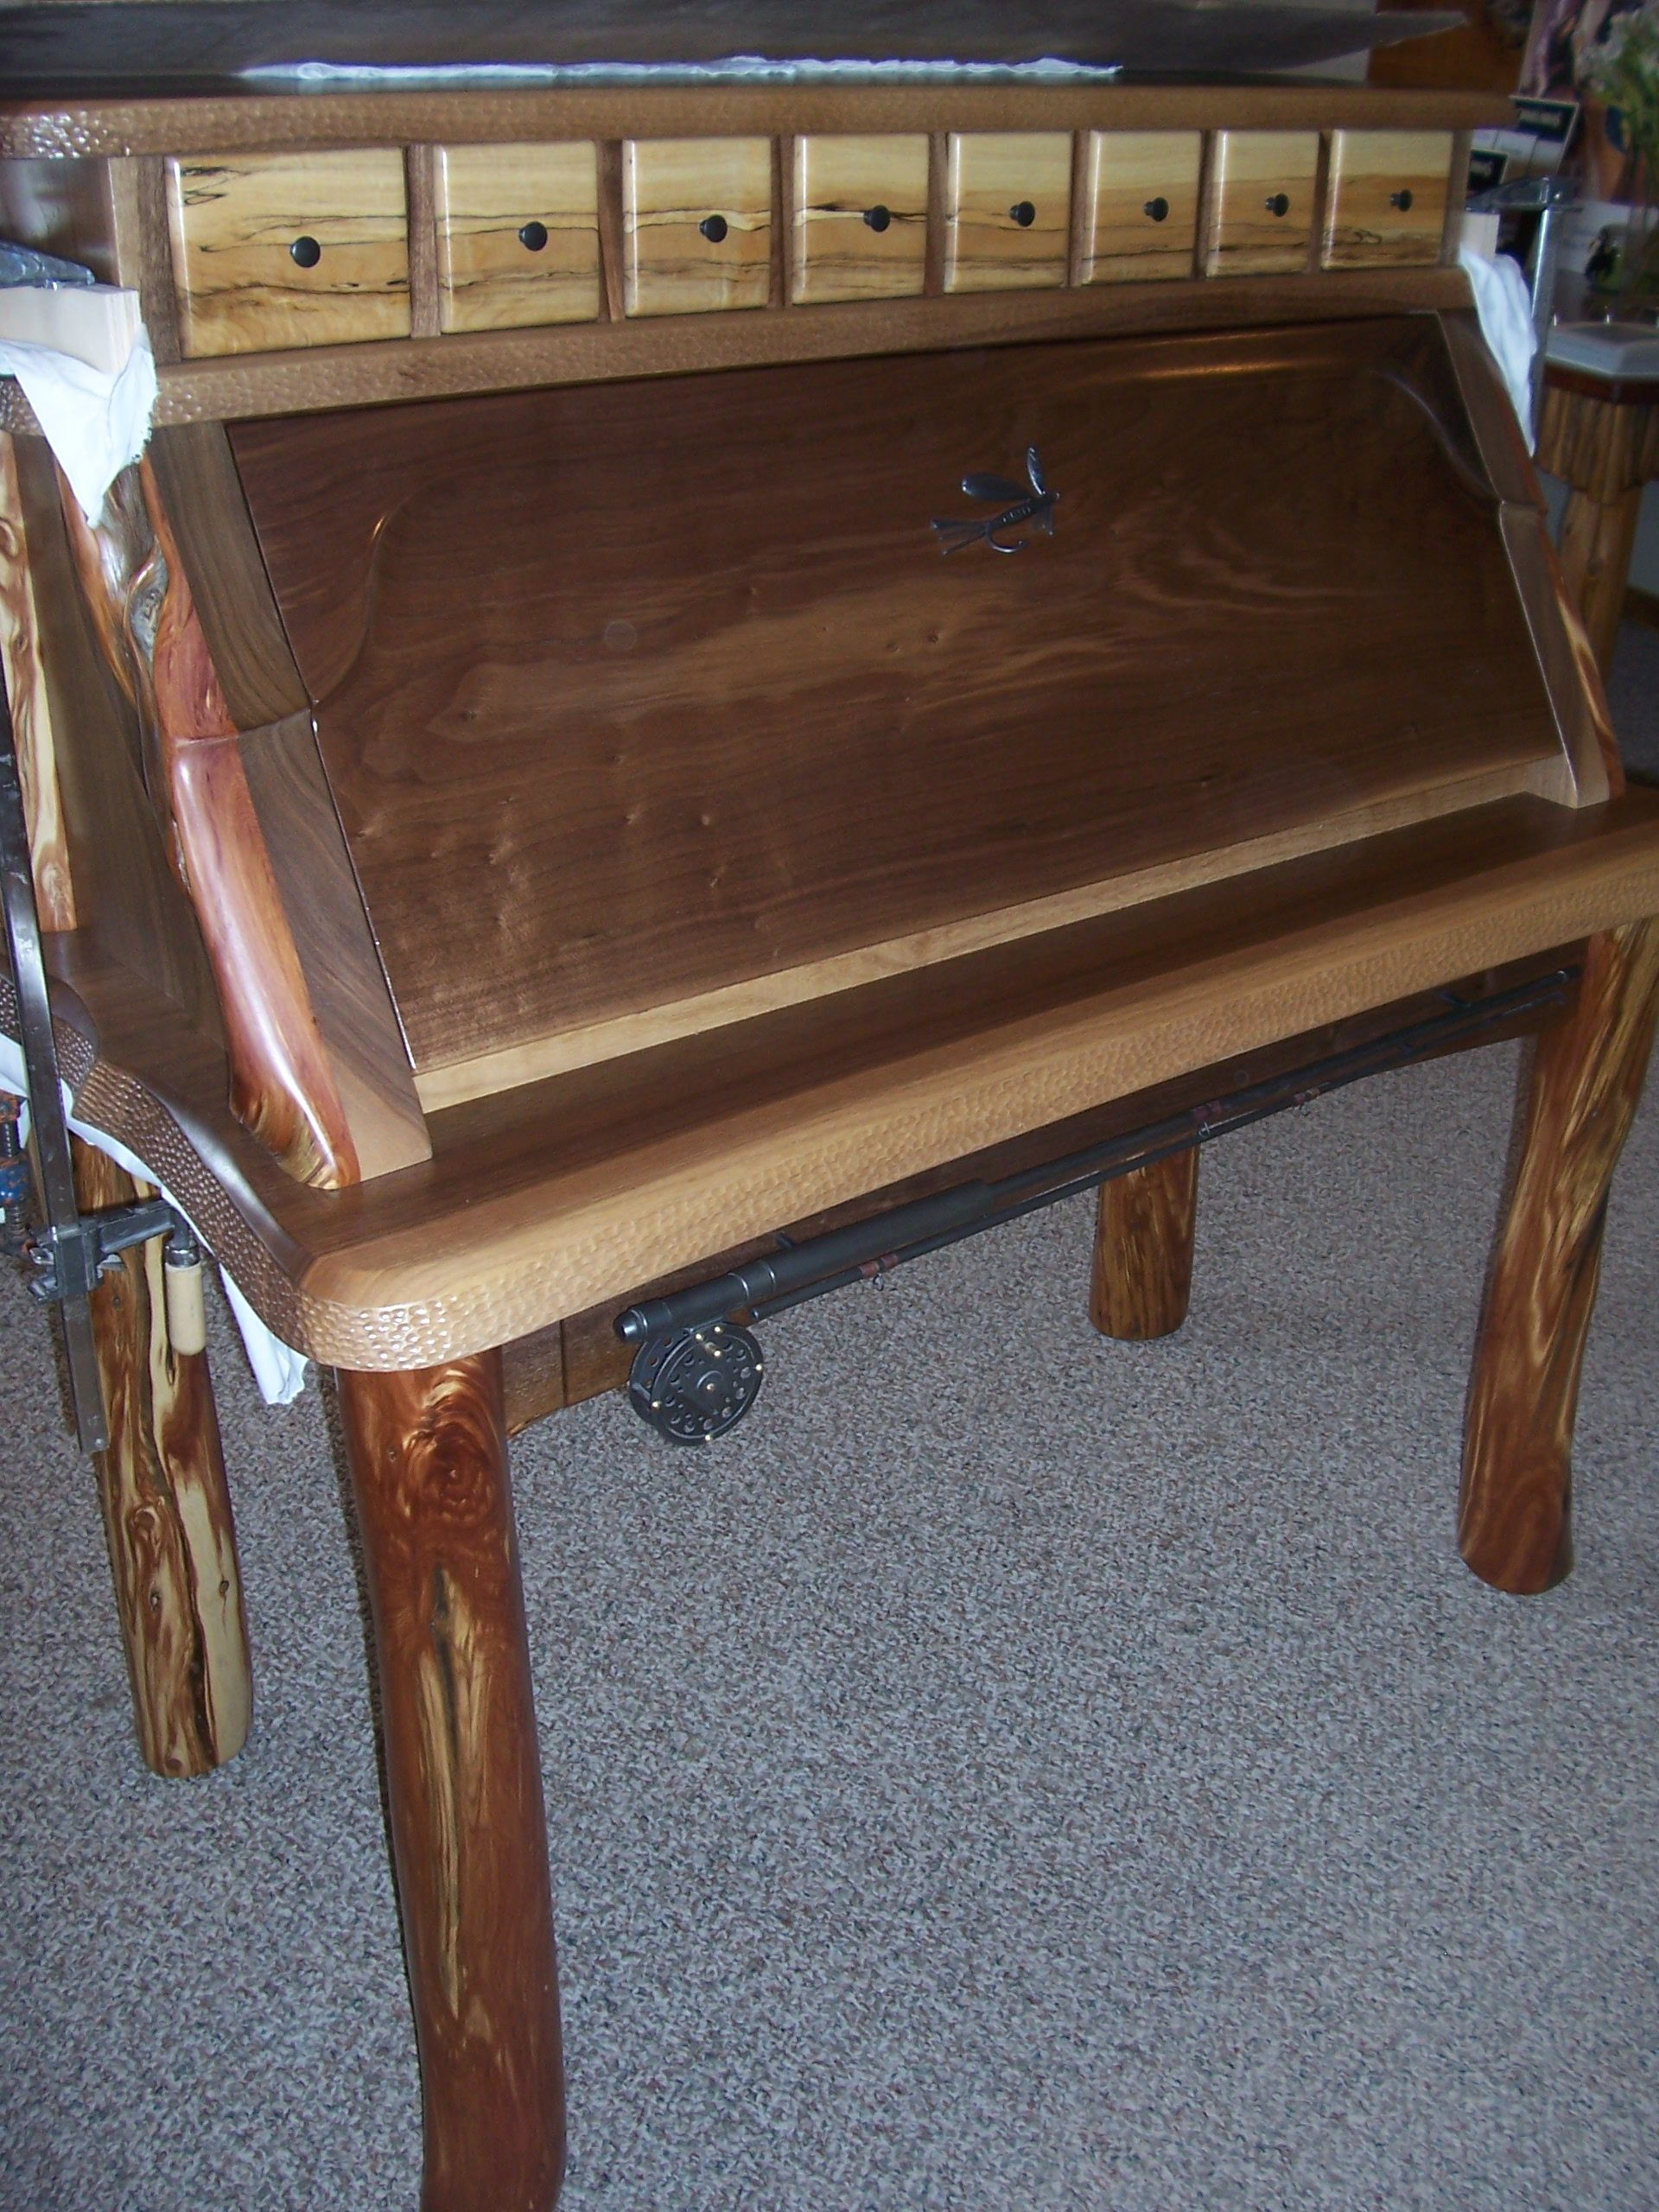 Awesome McMahon Fly Tying Desk Fly Tying Desk, Fly Fishing Gear, Wood Working,  Organizers